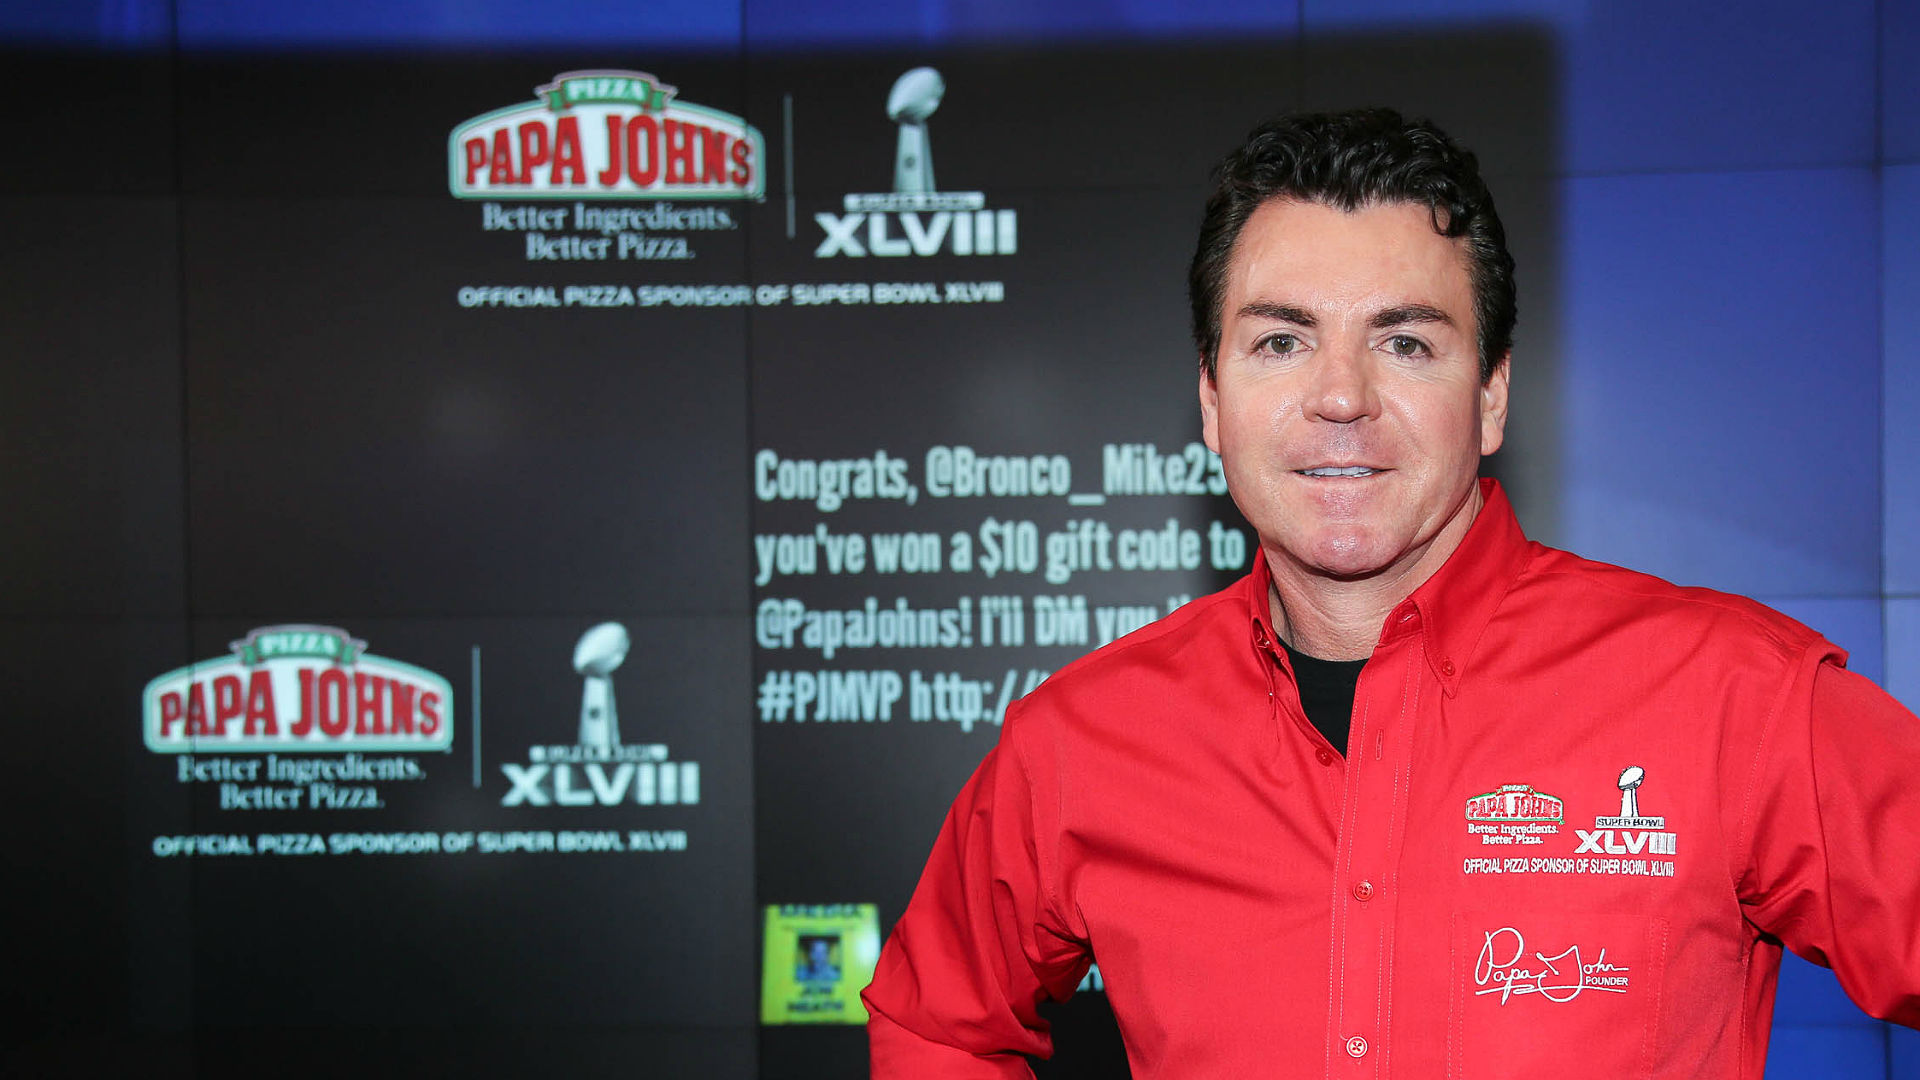 Papa John's clarifies its stance regarding National Football League , player protests